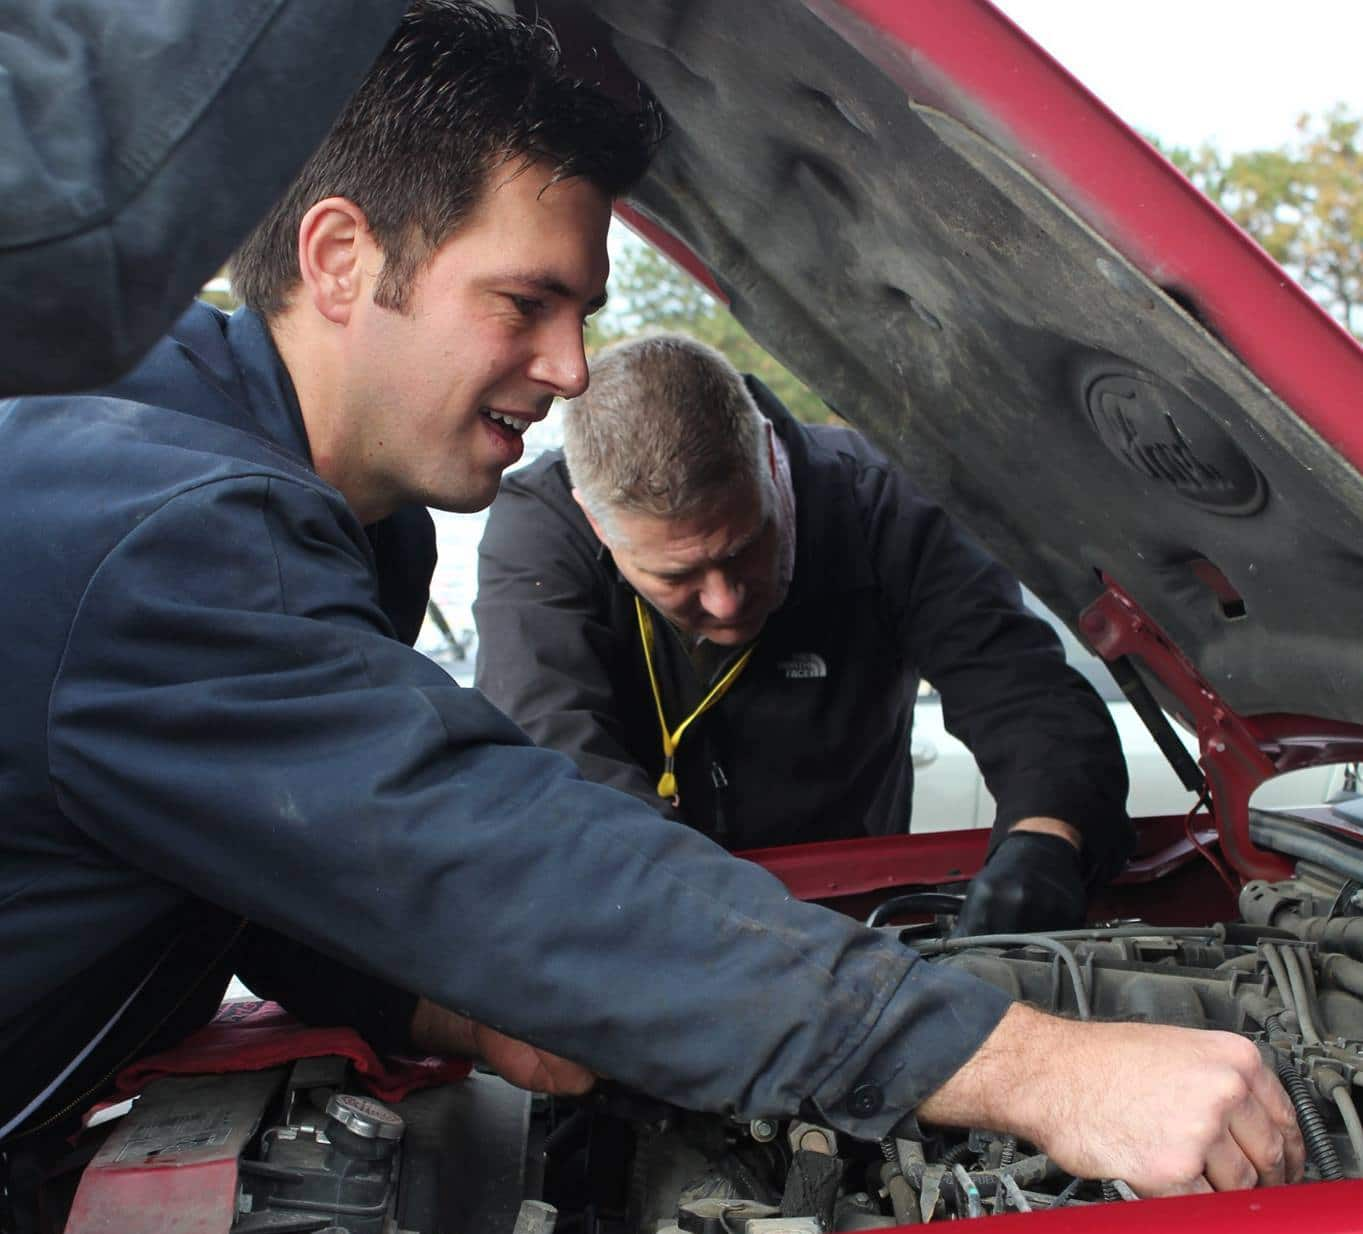 Simple Car Maintenance Can Avoid Costly Tickets